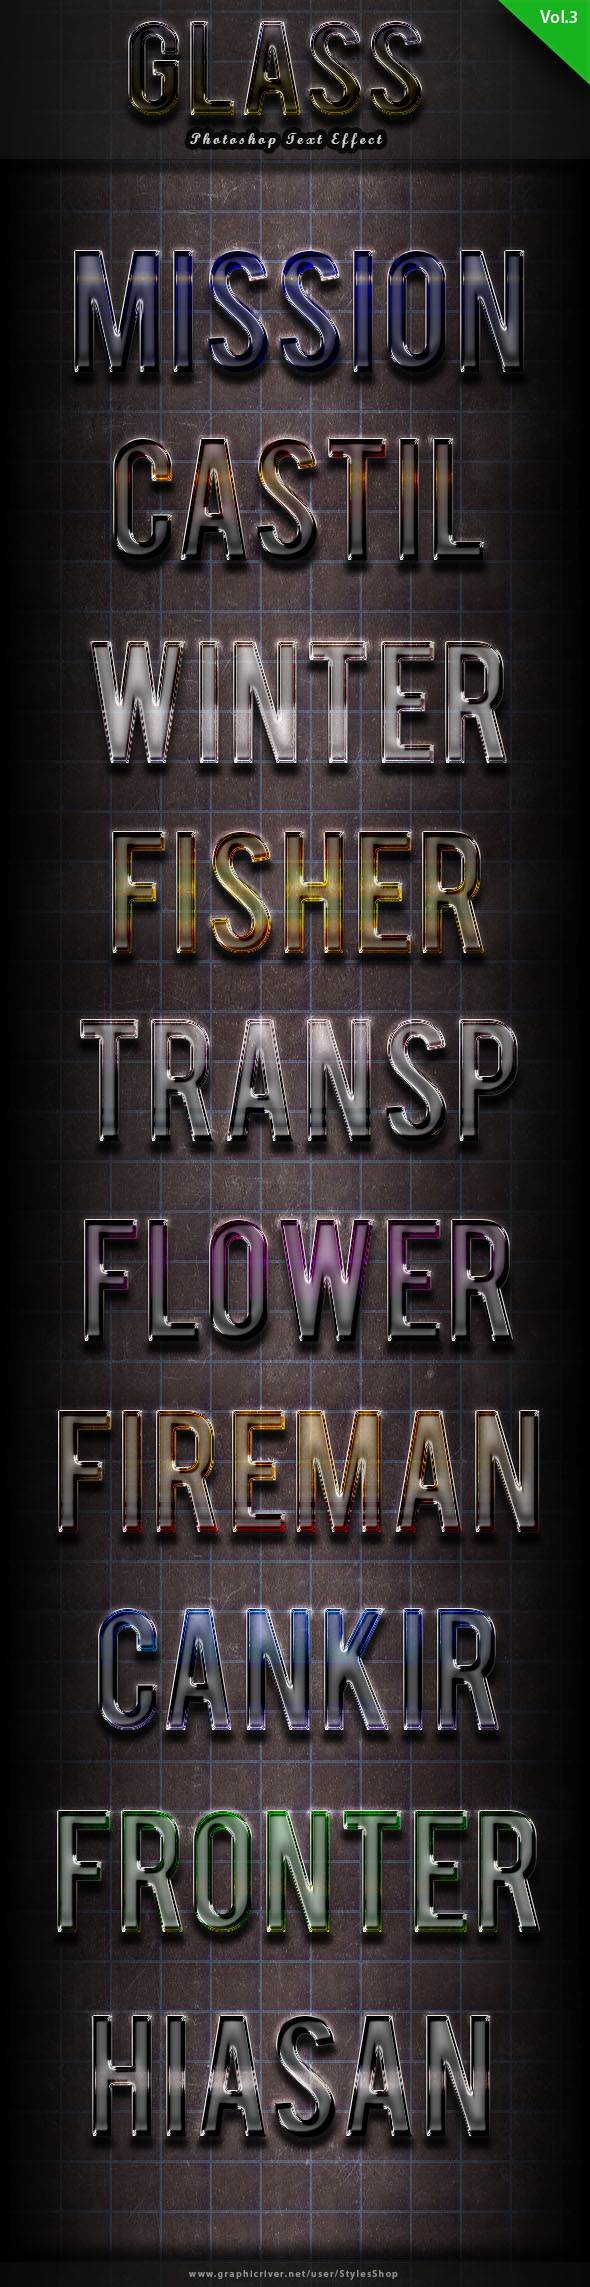 Glass Text Effect vol 3 - Text Effects Styles